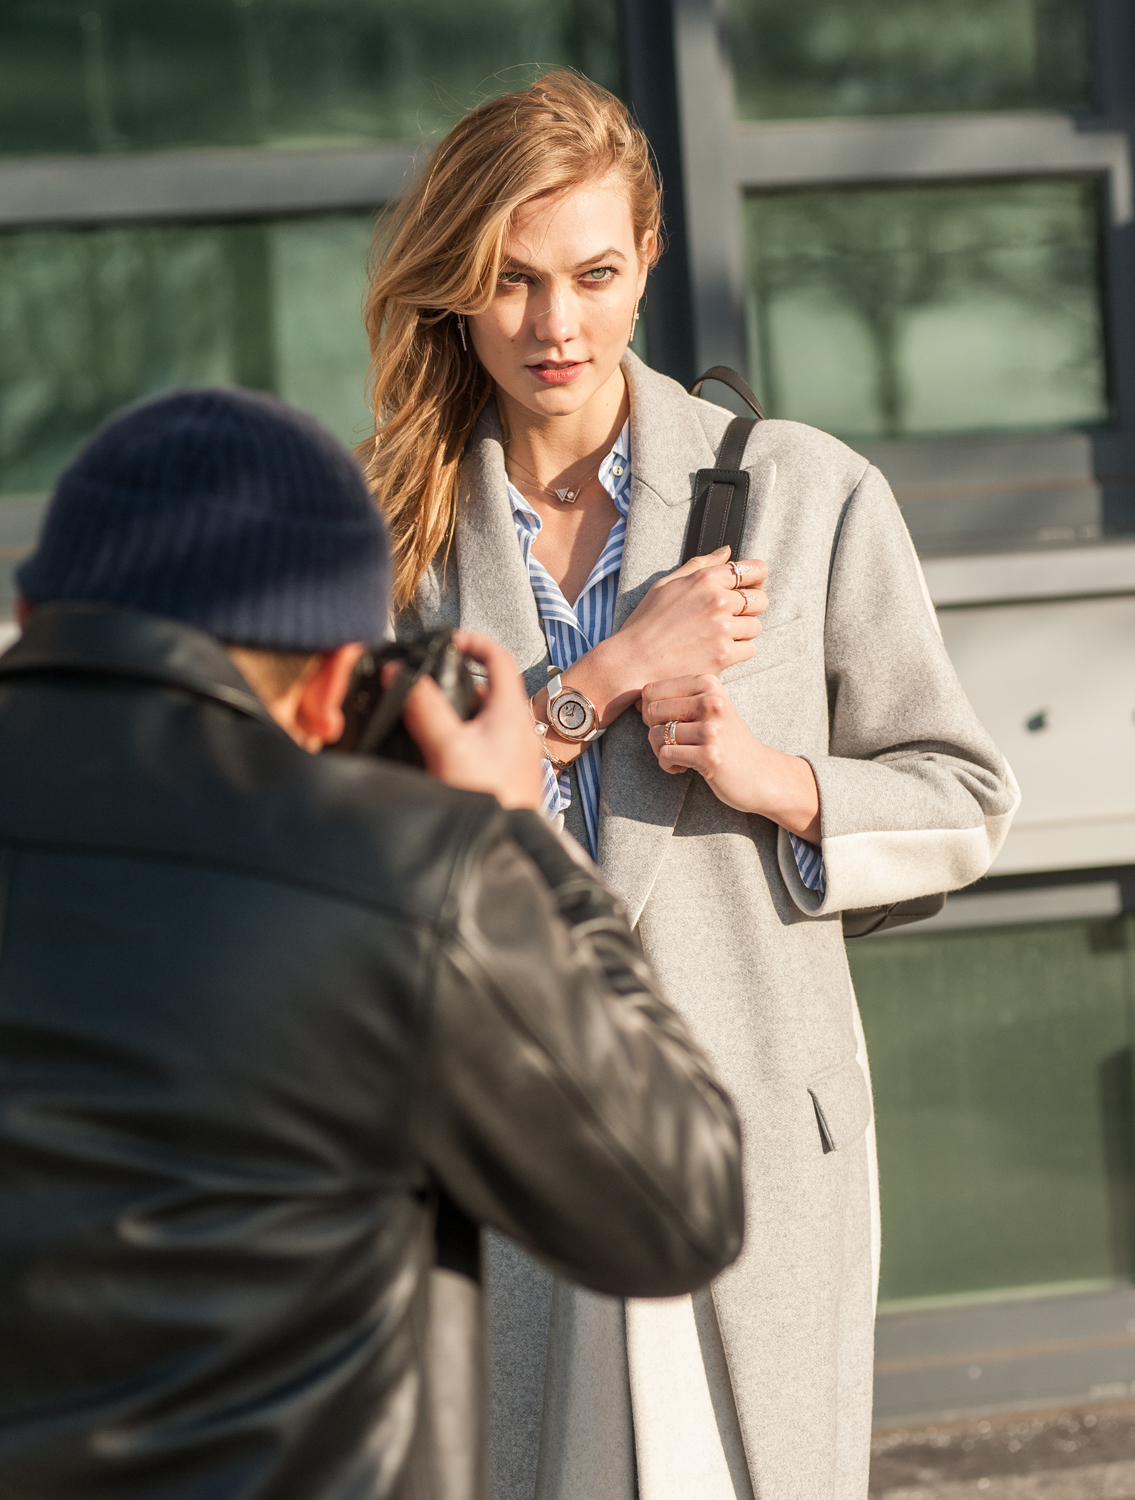 Karlie Kloss / Swarovski / Behind the Scenes